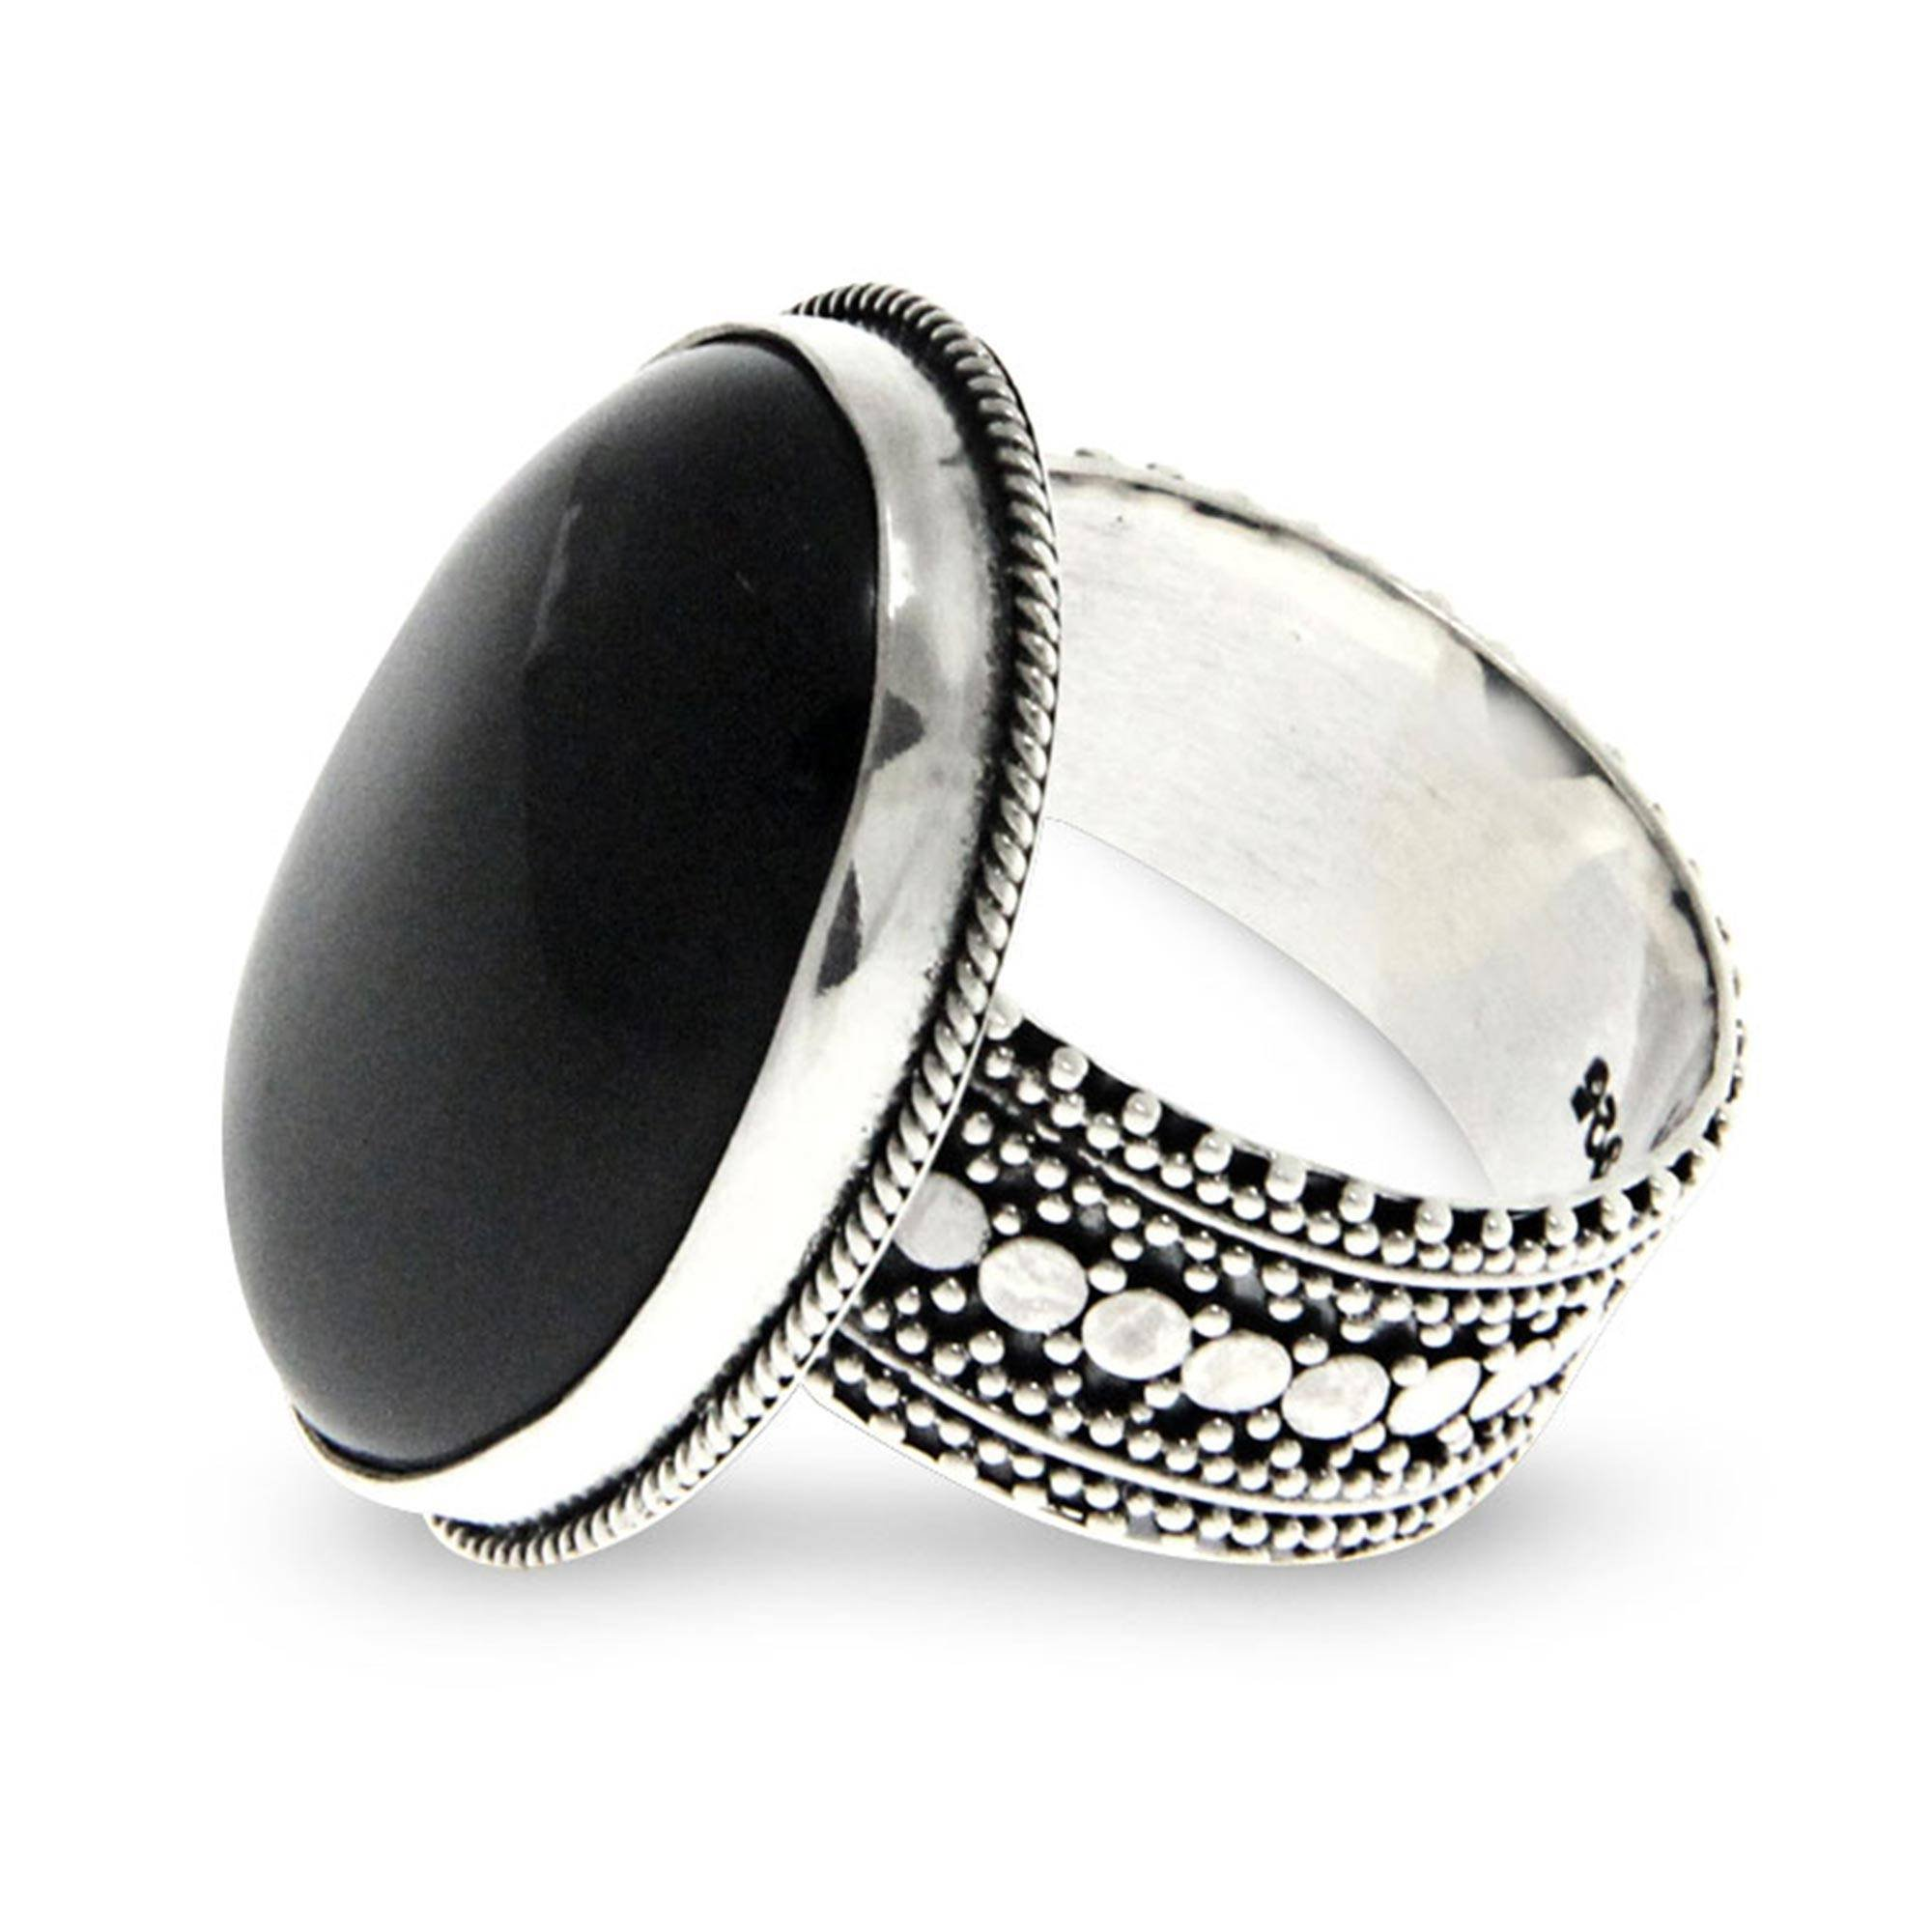 NOVICA Onyx .925 Sterling Silver Handmade Cocktail Ring, Oracle'